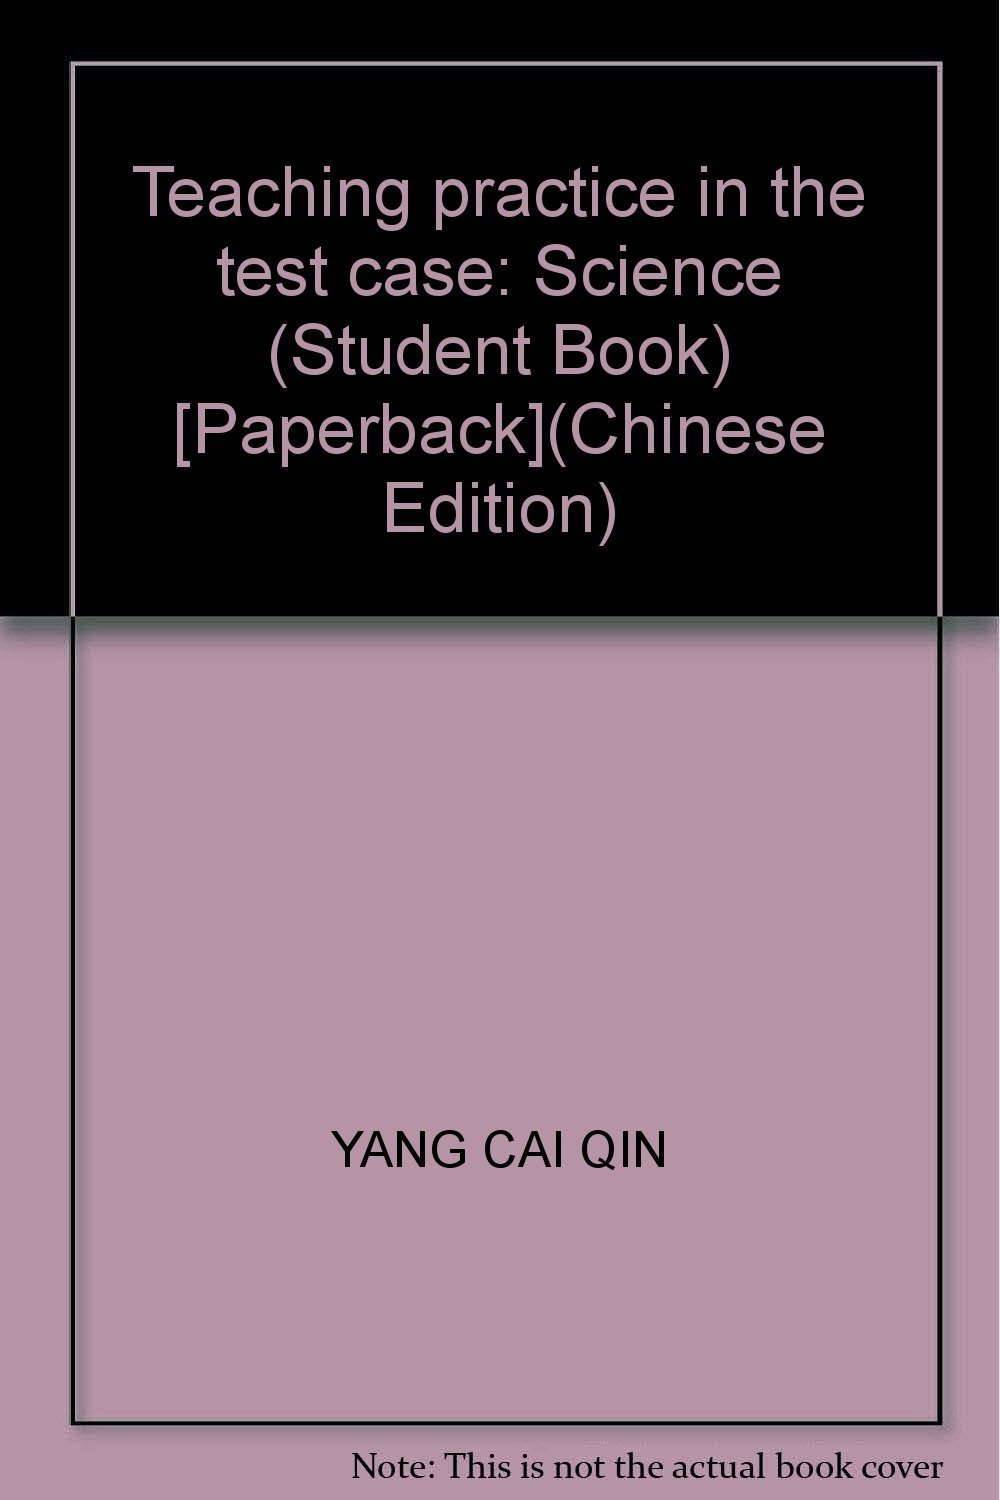 Download Teaching practice in the test case: Science (Student Book) [Paperback](Chinese Edition) PDF